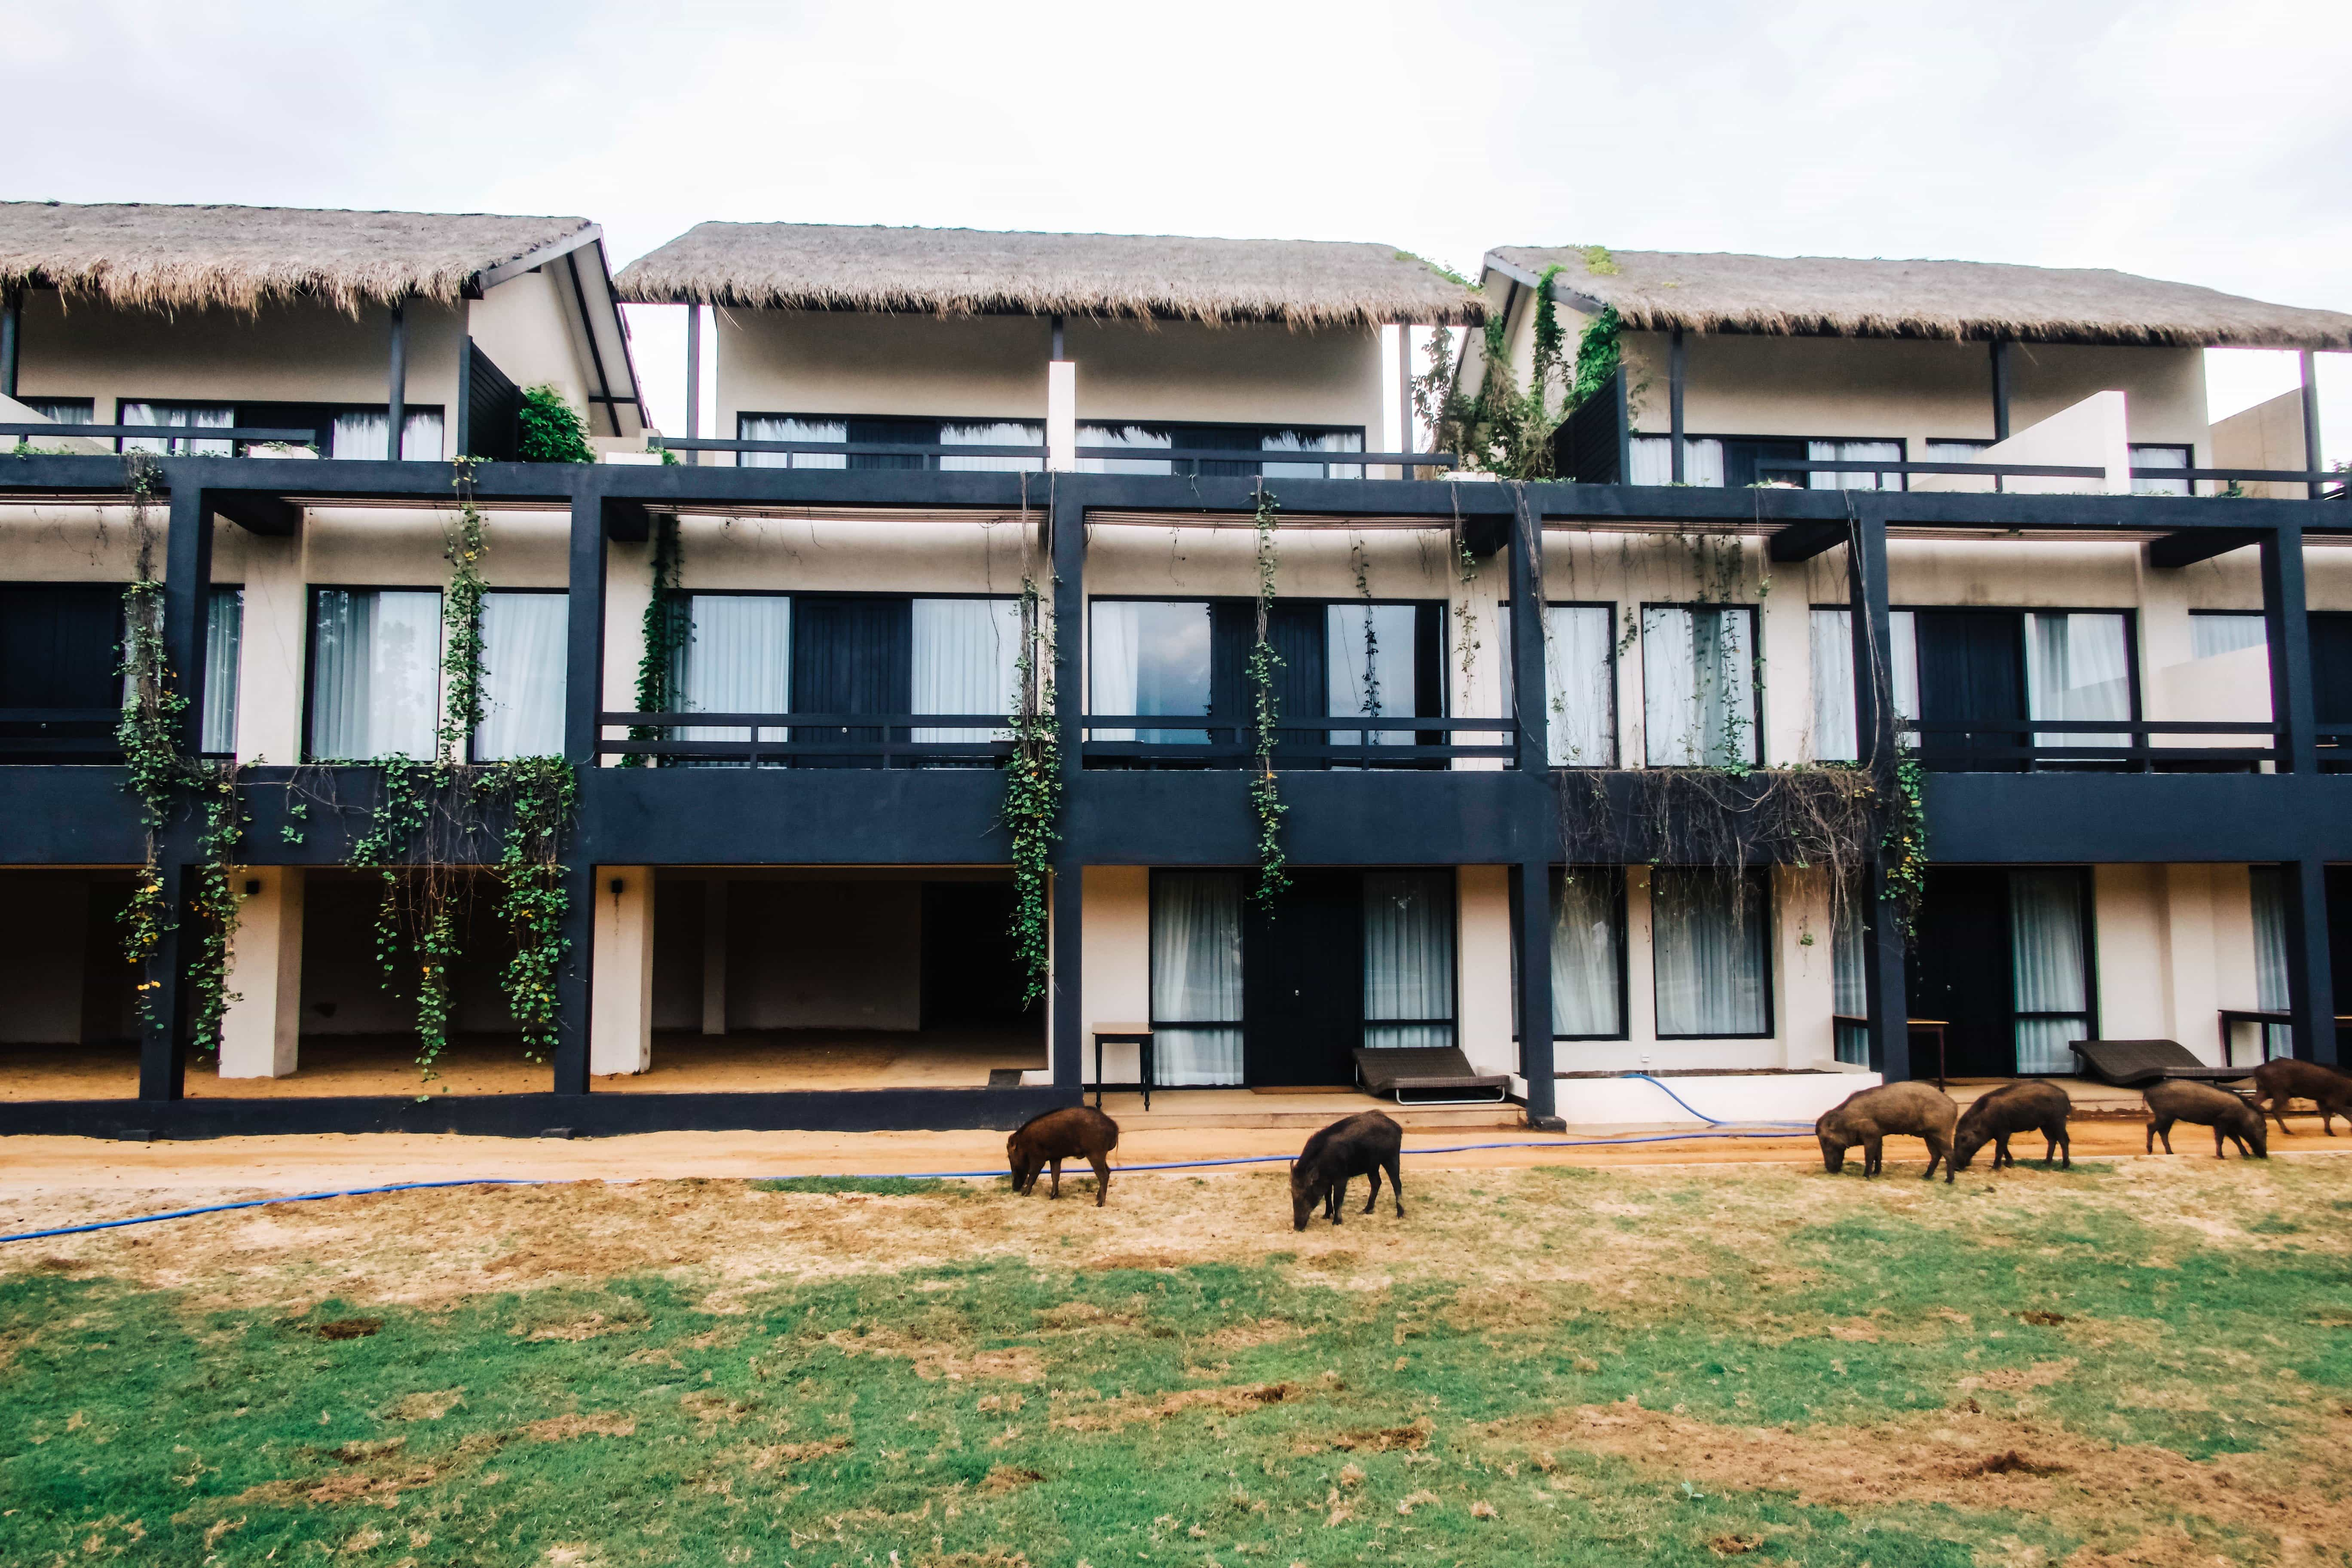 When we found out that there was a luxury hotel situated in the heart of Yala National Park, where wild animals roam free, we just had to stay at the Jetwing Yala. You can easily spend a week at Jetwing Yala basking in relaxation or venturing greater into the National Park in search of more wildlife. Read more at www.thefivefoottraveler.com